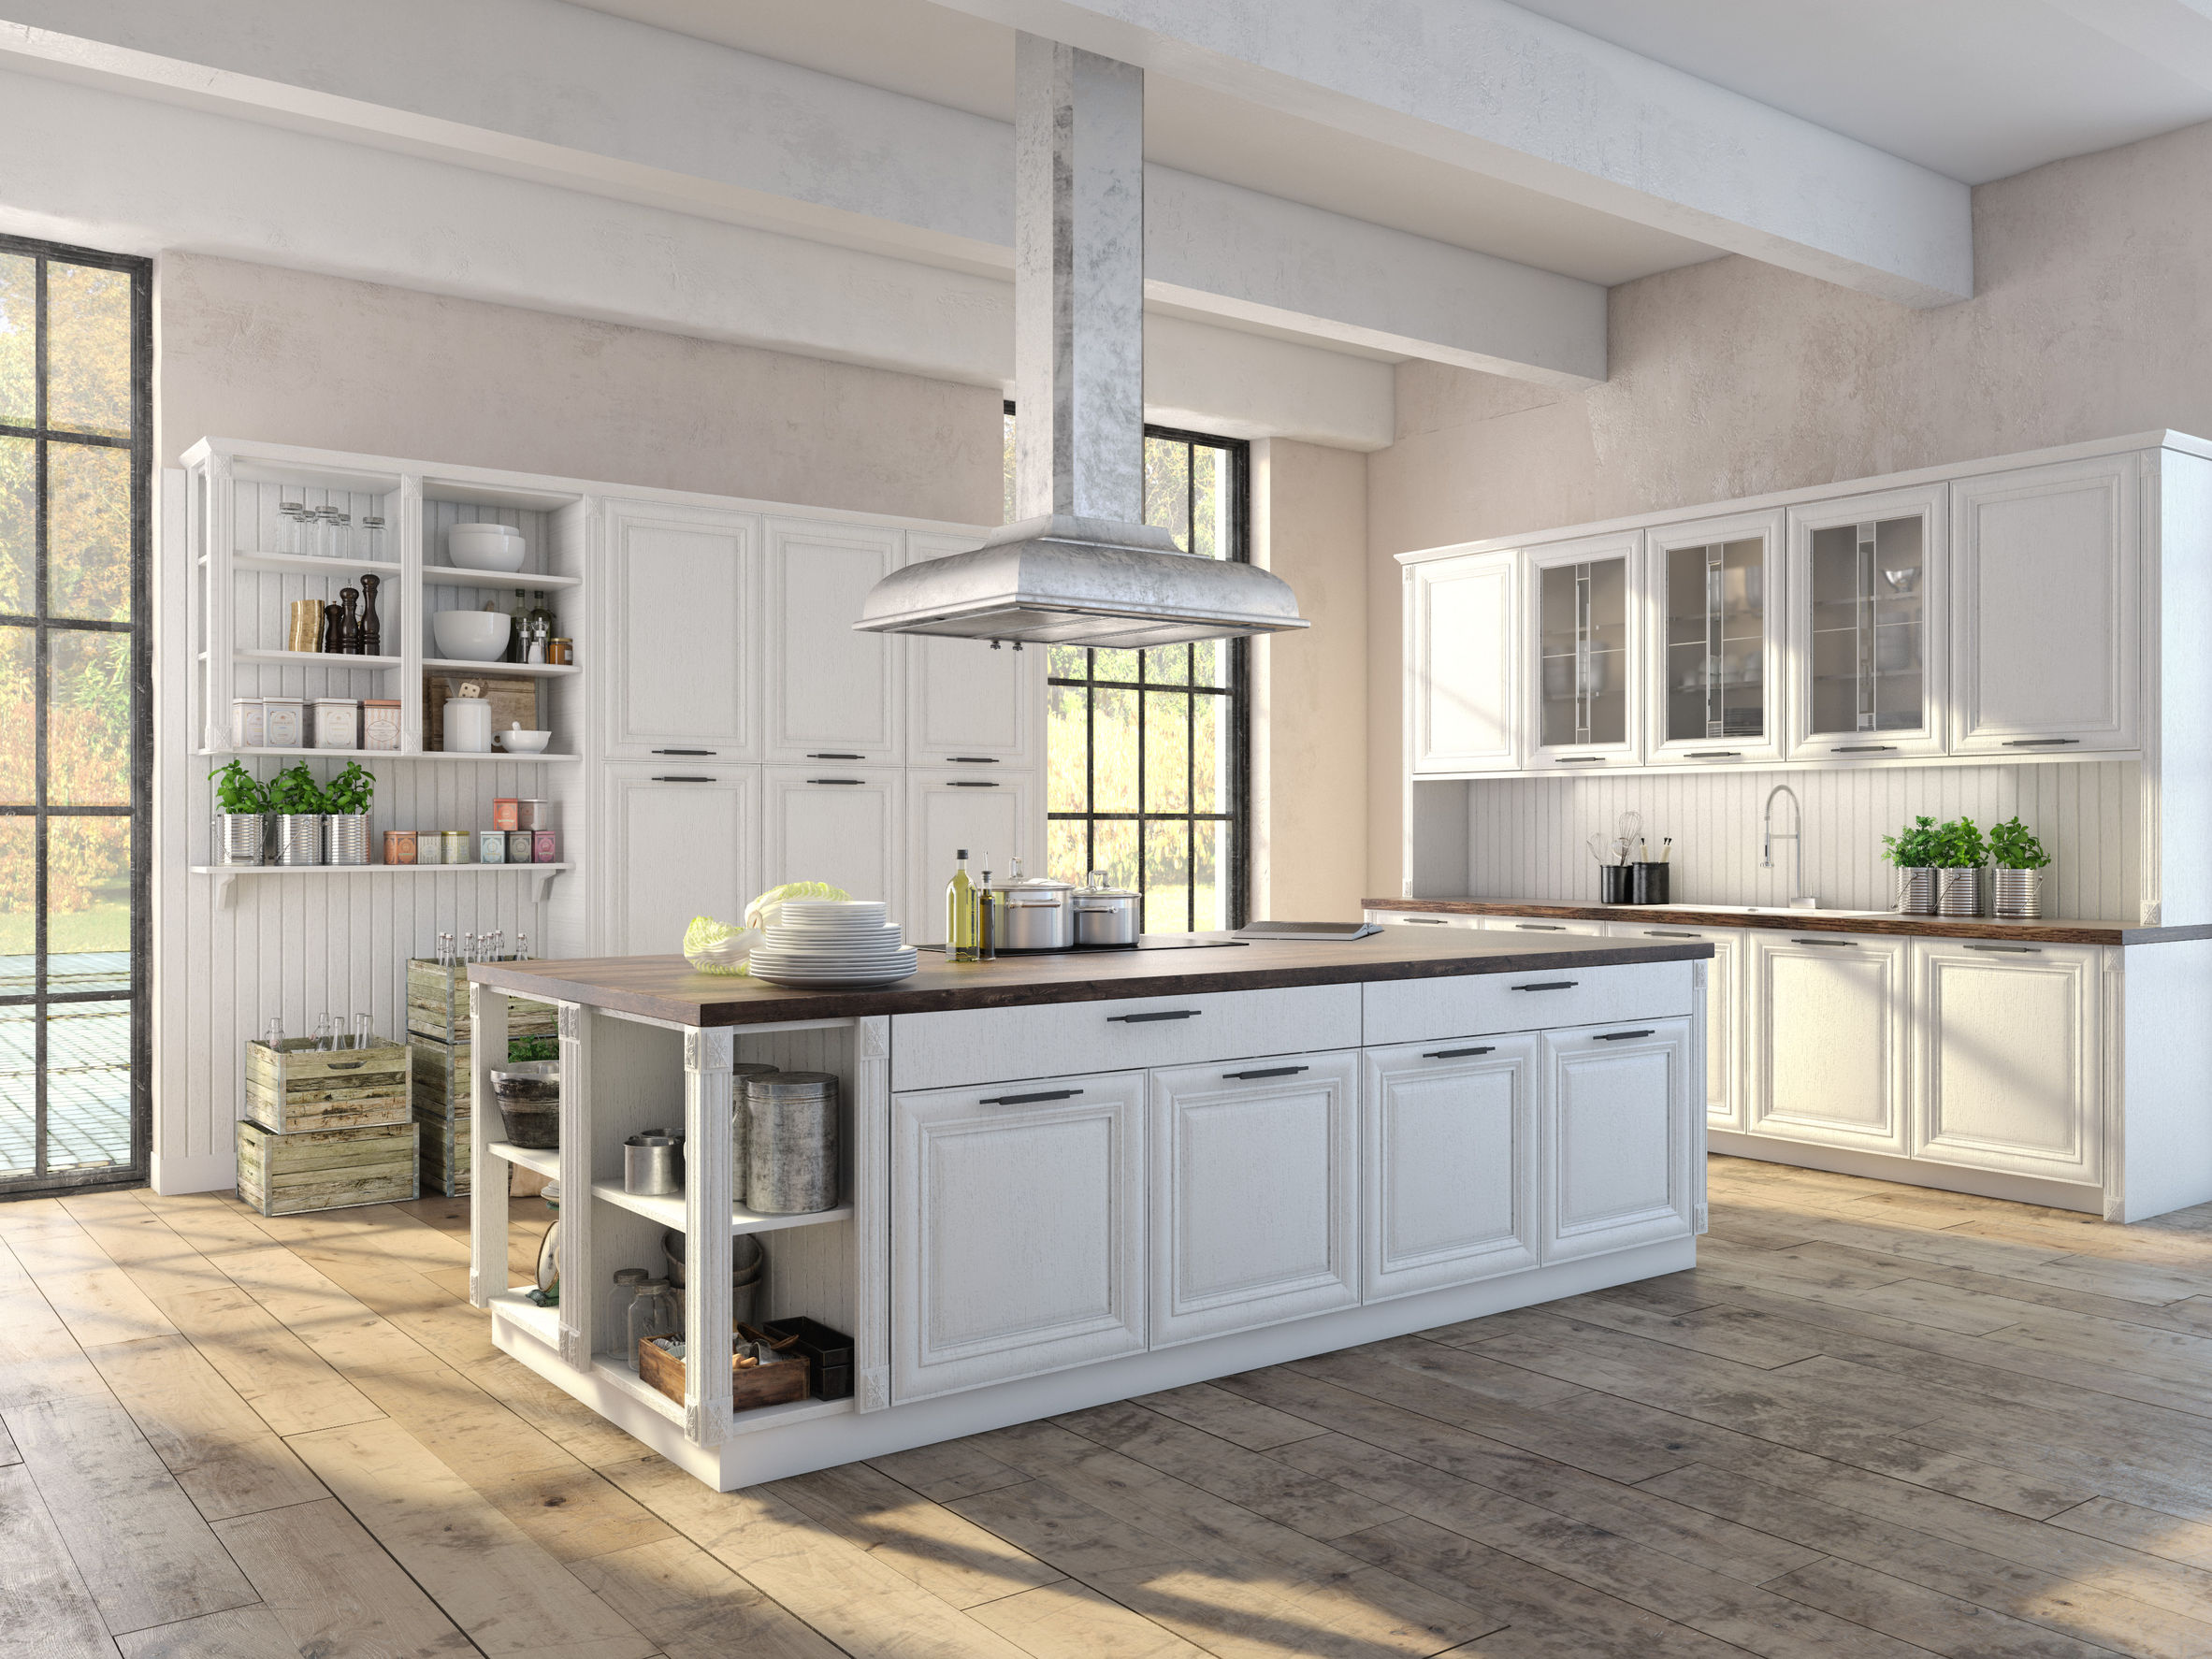 Kitchen Remodeling Contractors San Jose CA: Kitchen Remodel Cost